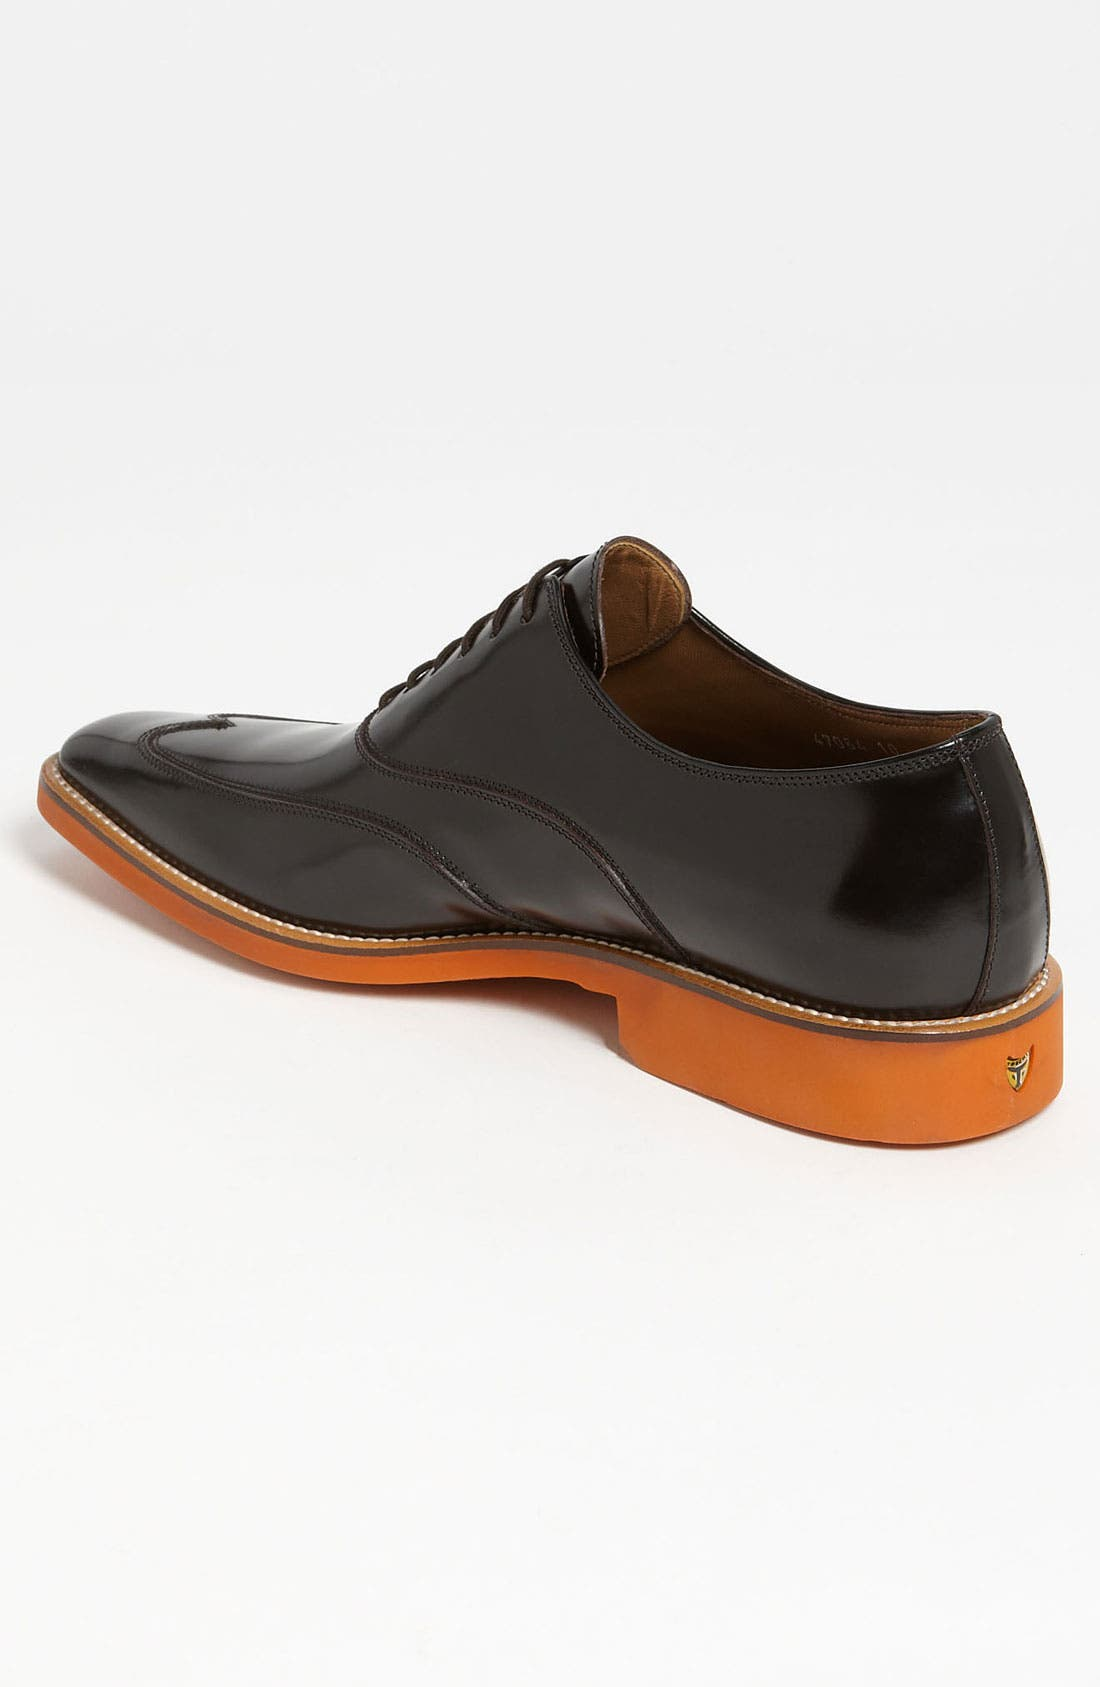 Alternate Image 2  - Michael Toschi 'Luciano' Patent Leather Wingtip